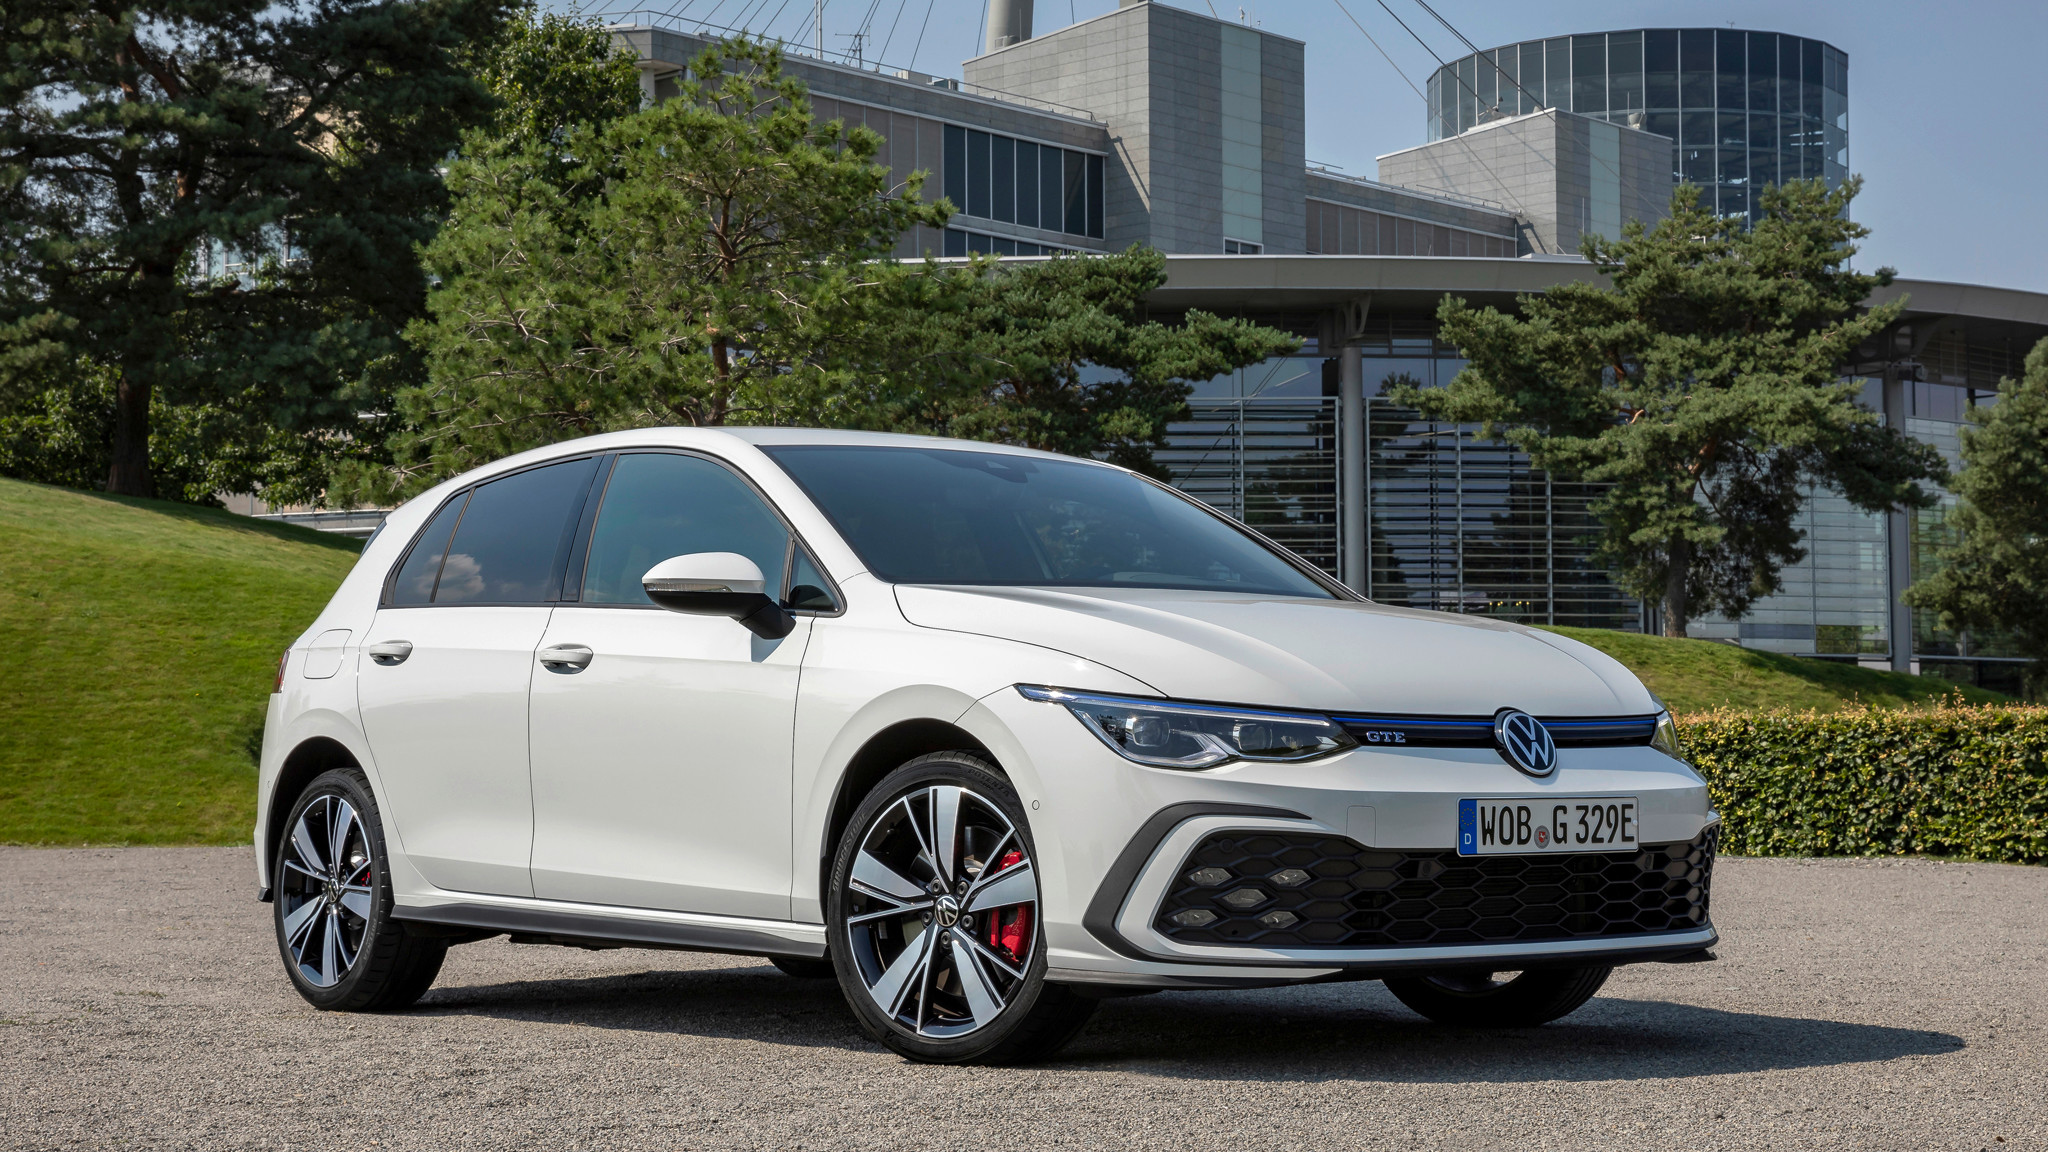 Buy Vw Golf 8 Gte And Ehybrid The New Golf Generation Marijuanapy The World News